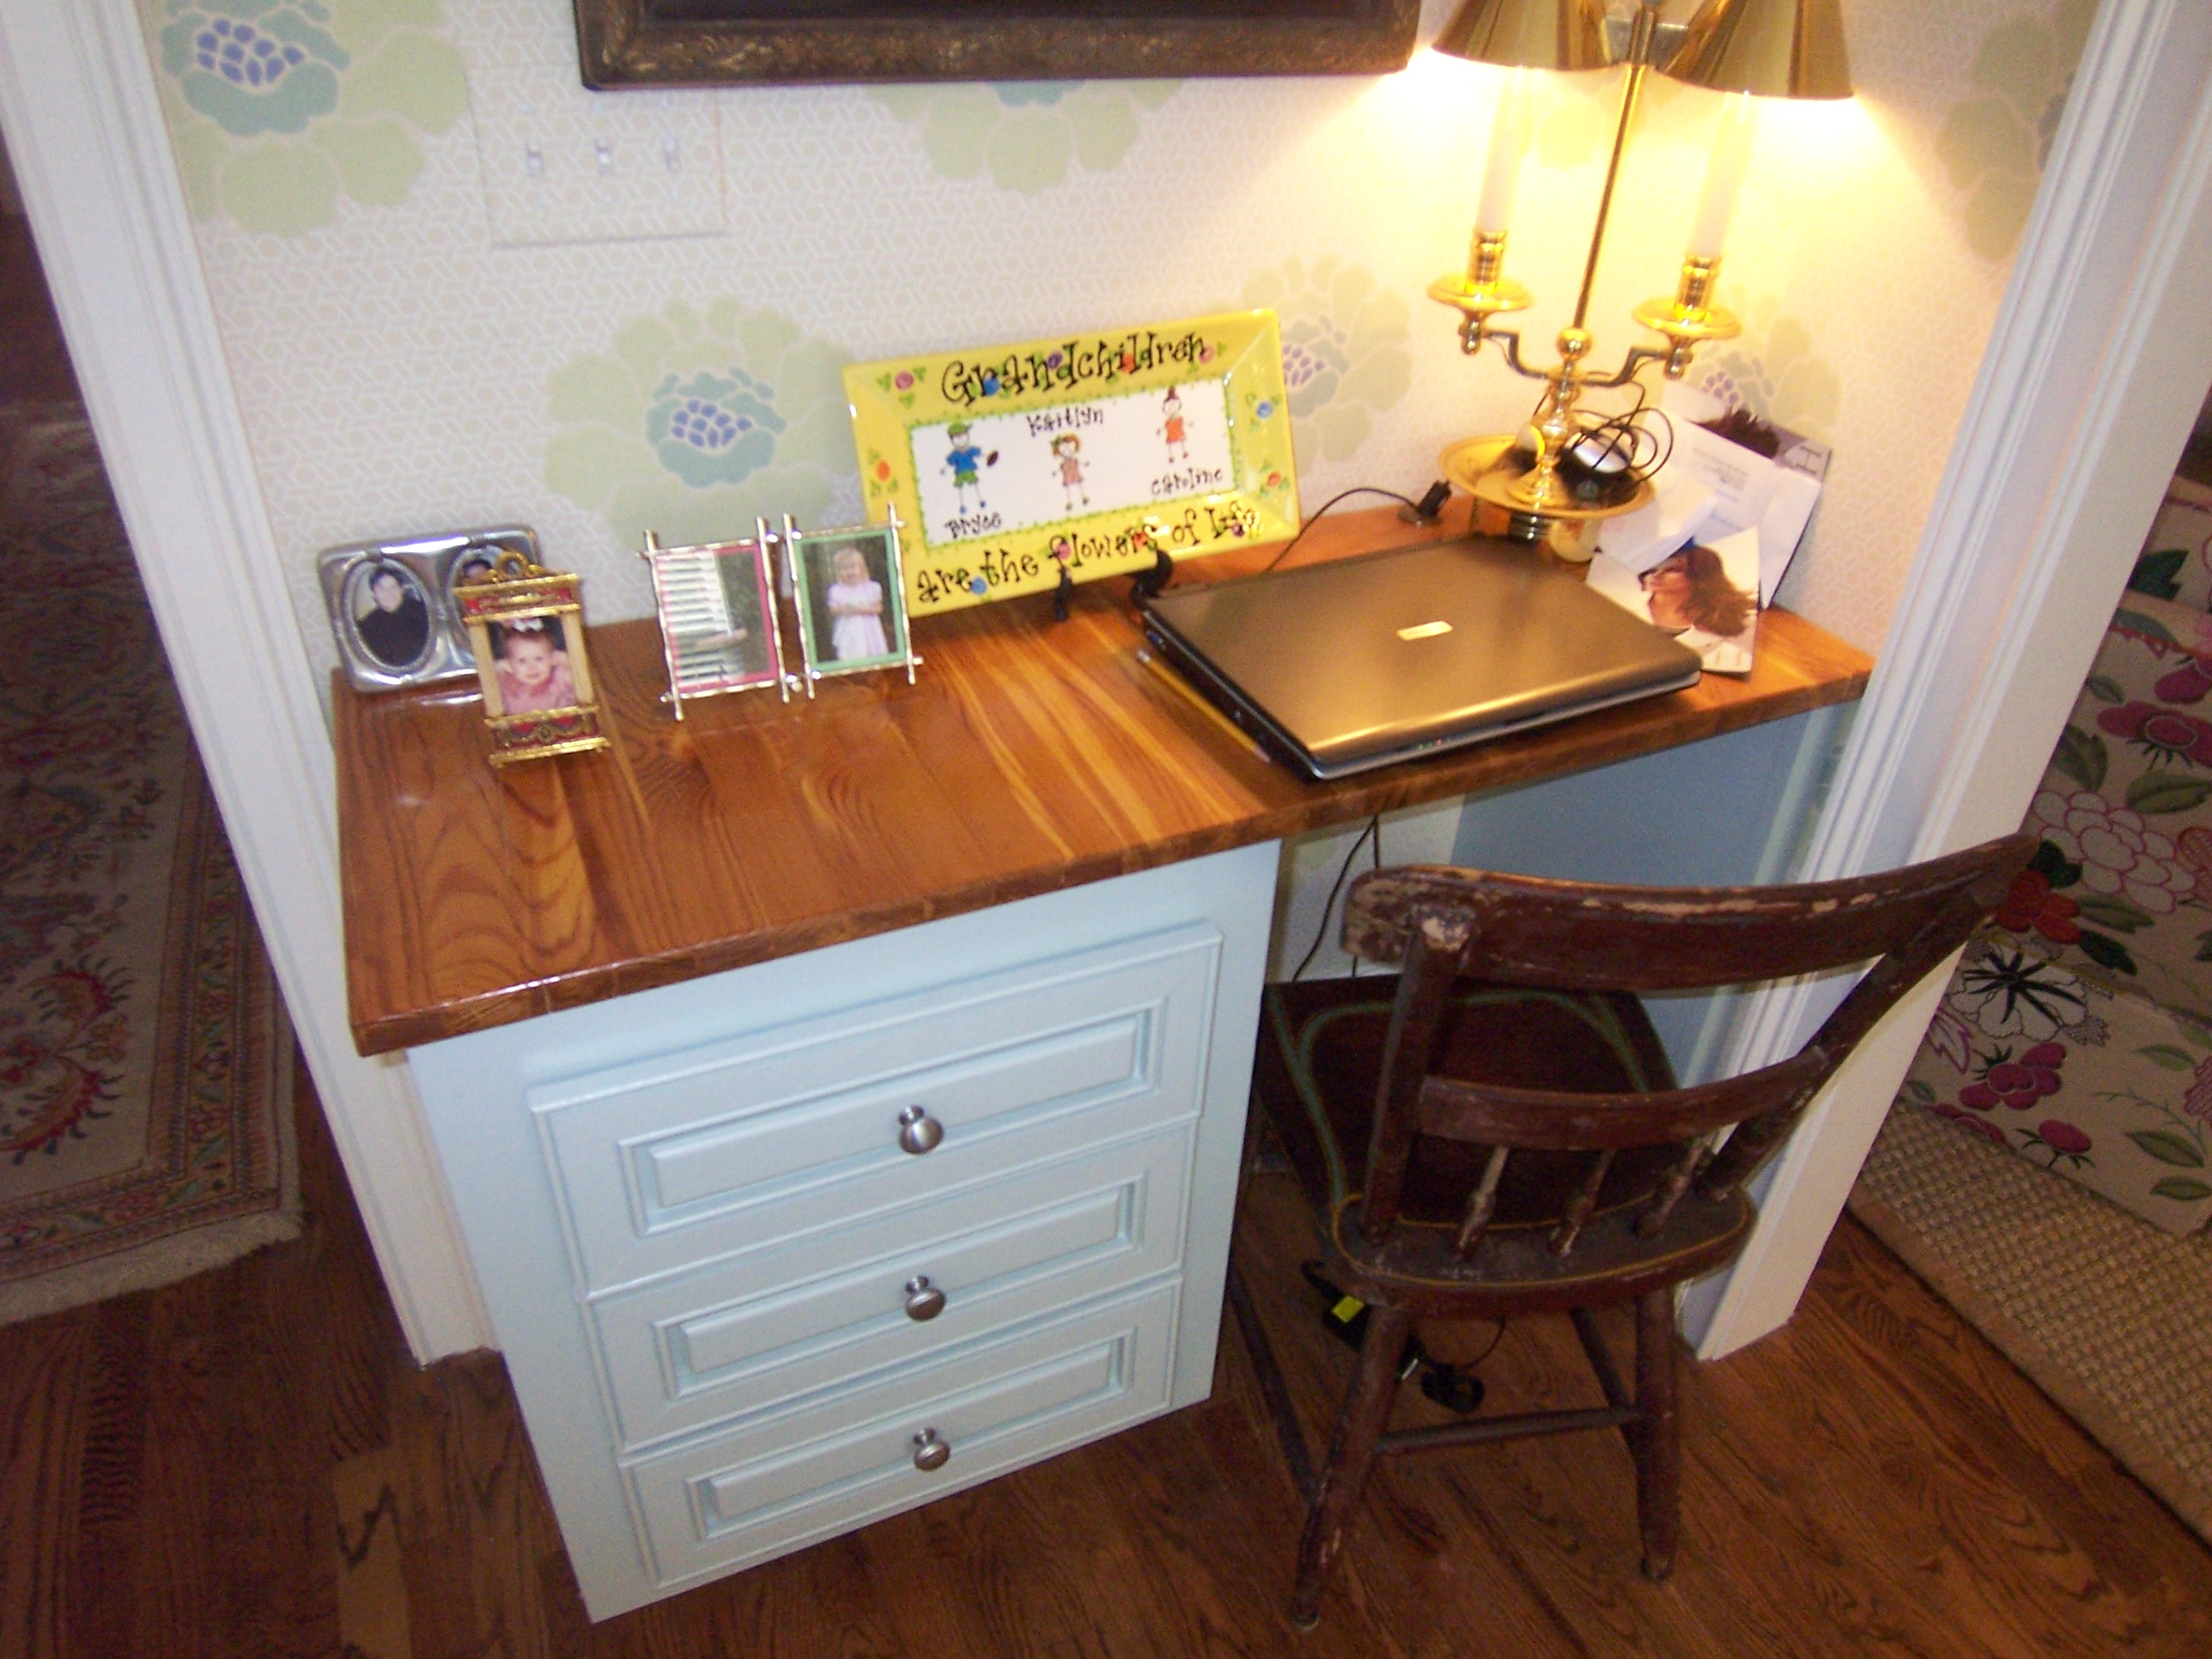 Custom-Kitchen-Desk-Antique-Pine-Buckhead-Paces-Construction-Atlanta